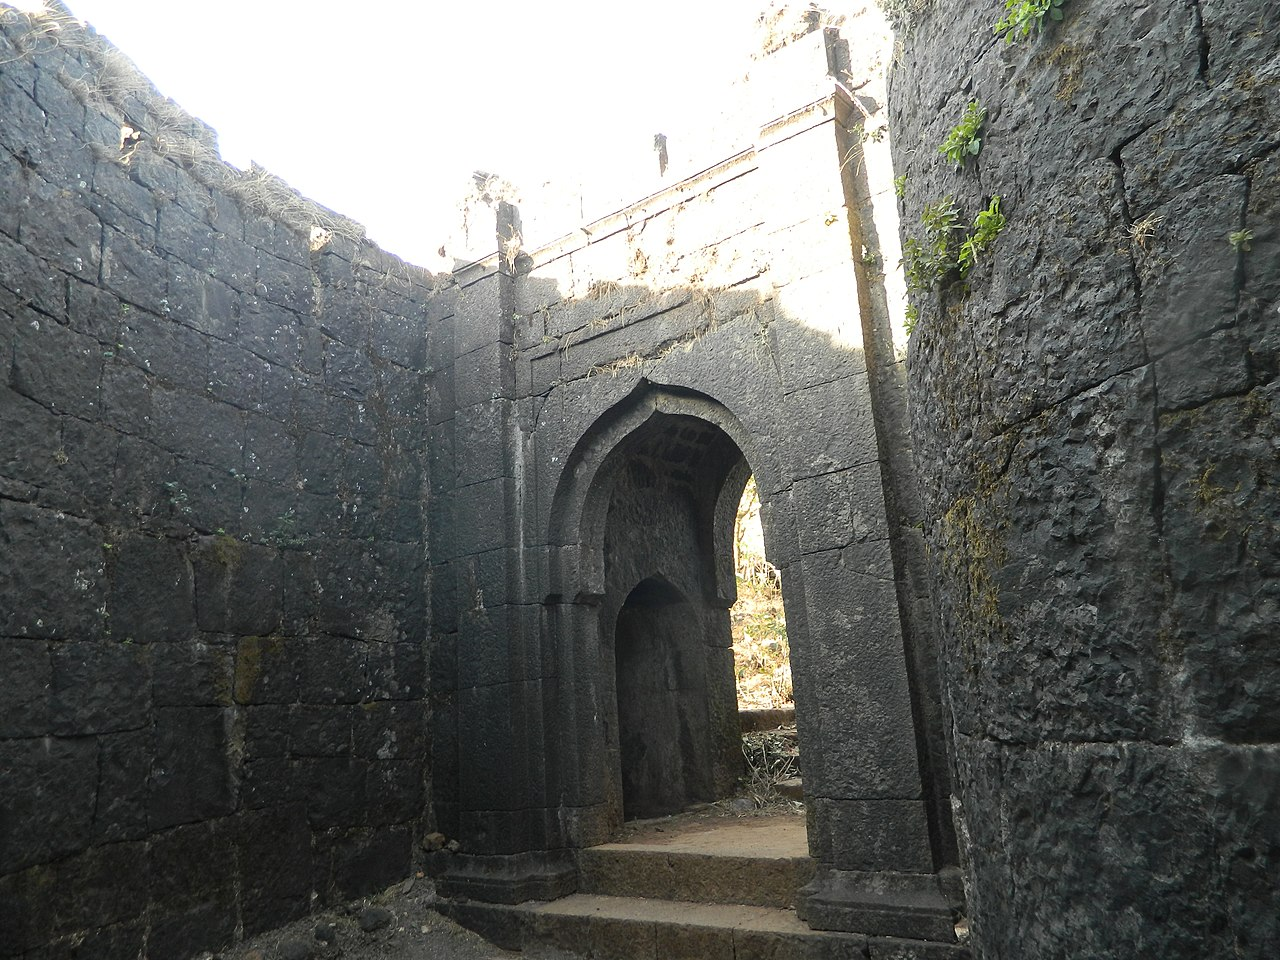 Structures Inside the Torna Fort